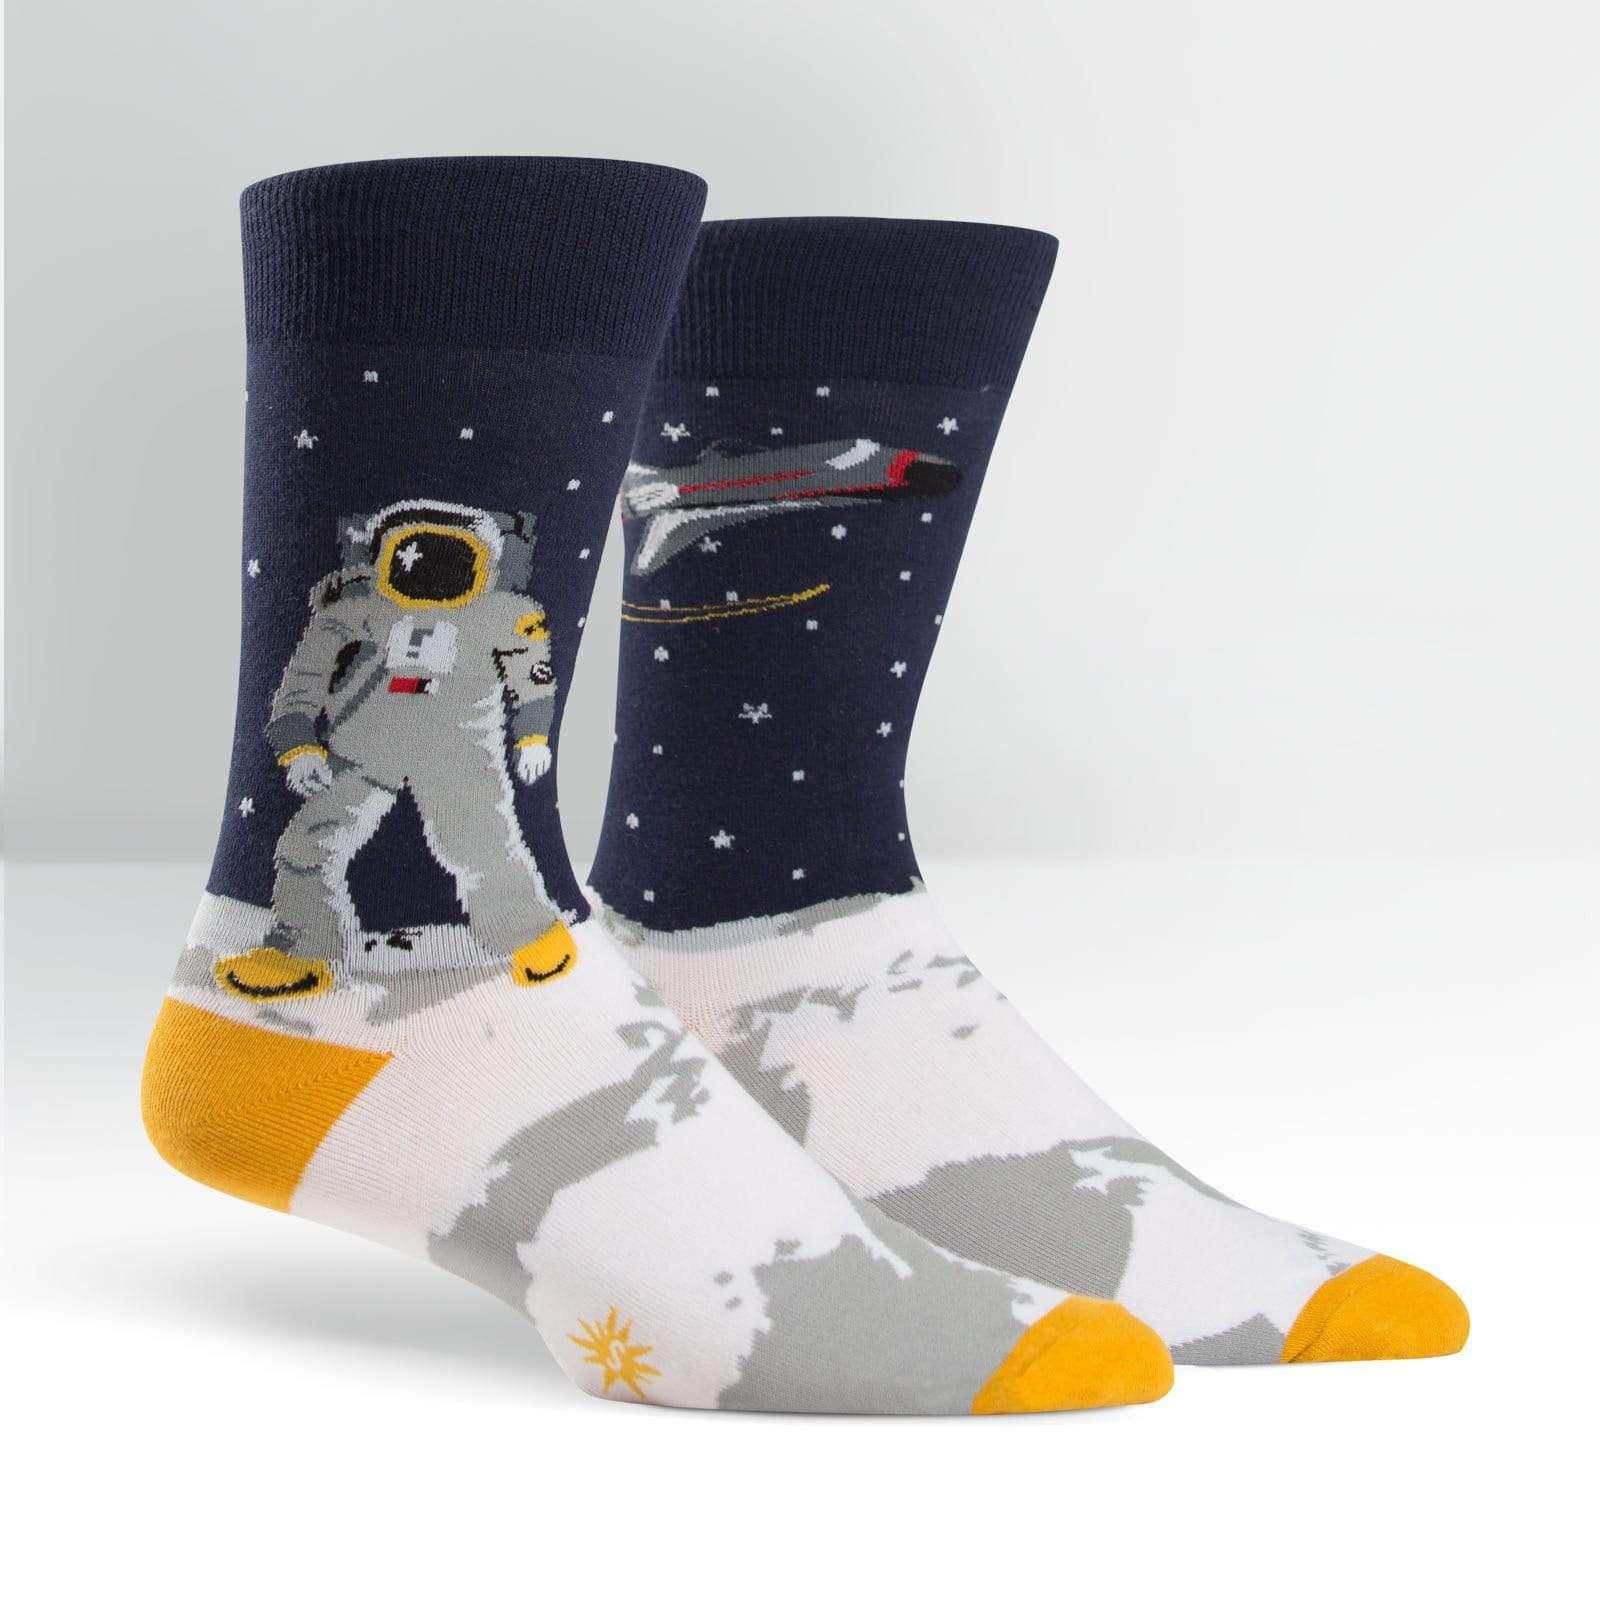 """One Giant Leap"" Astronaut Socks - Crew Socks for Men"